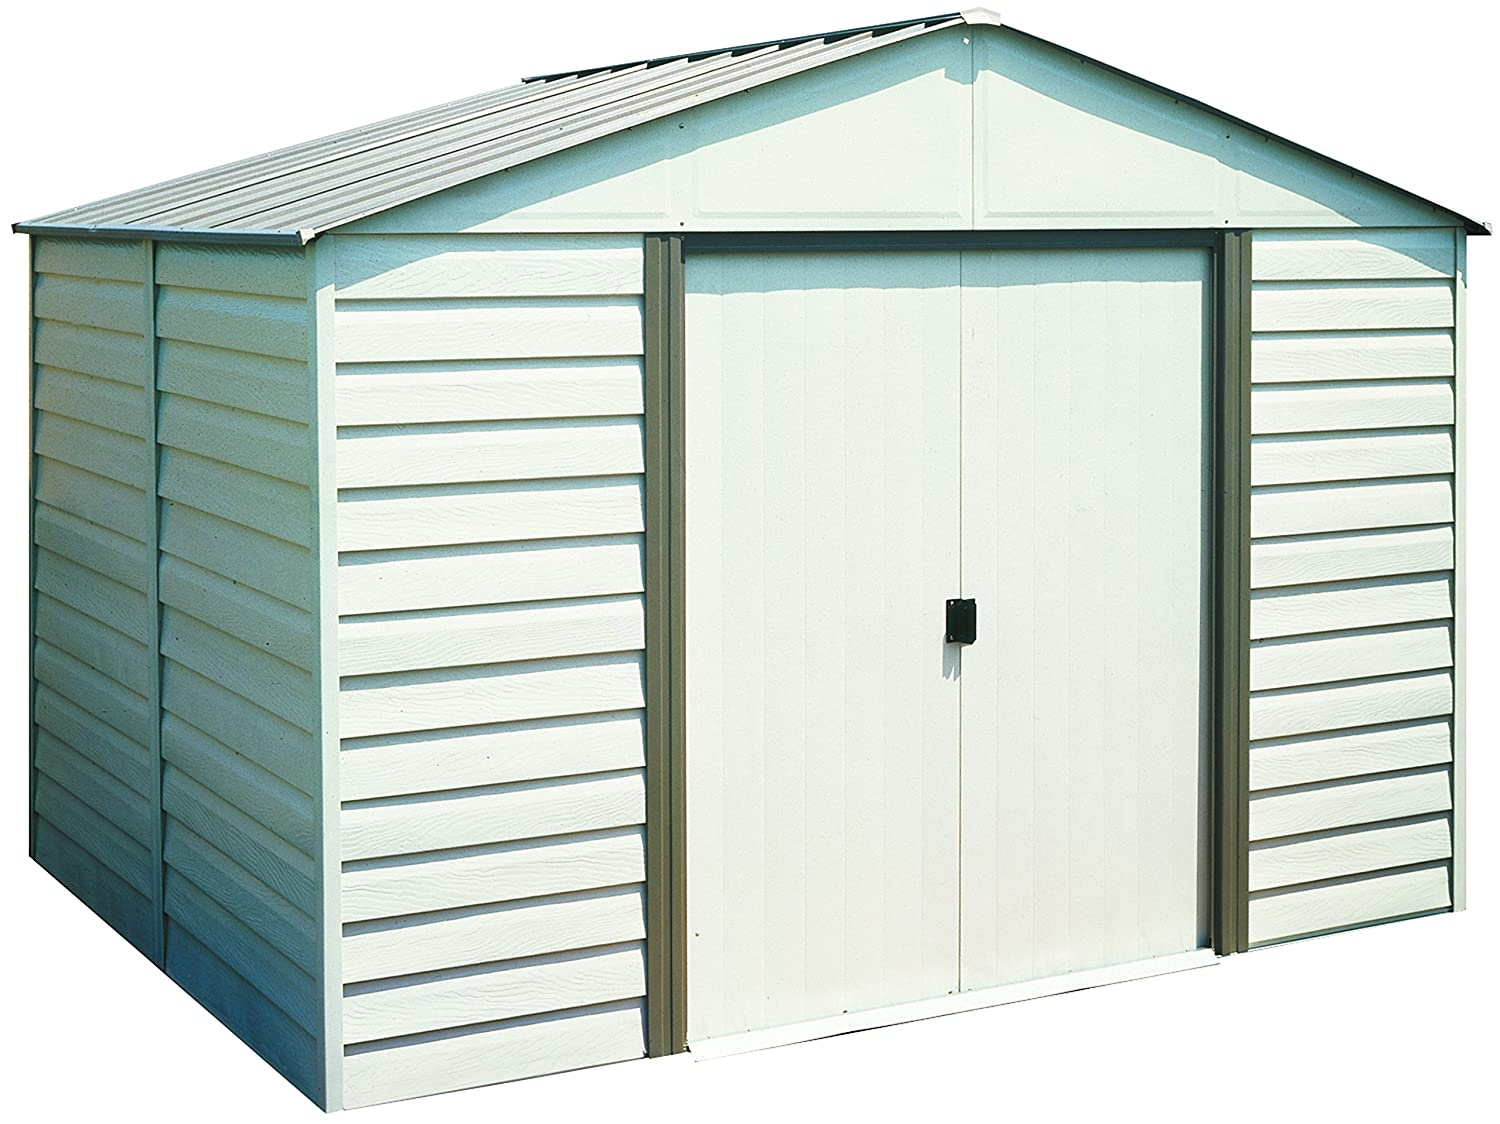 depot stor modern roof wooden home ideas windows spectacular sheds shed of white and vinyl suncast utility door beauty shades admirable pair with costco for your gray storage exterior hardtop